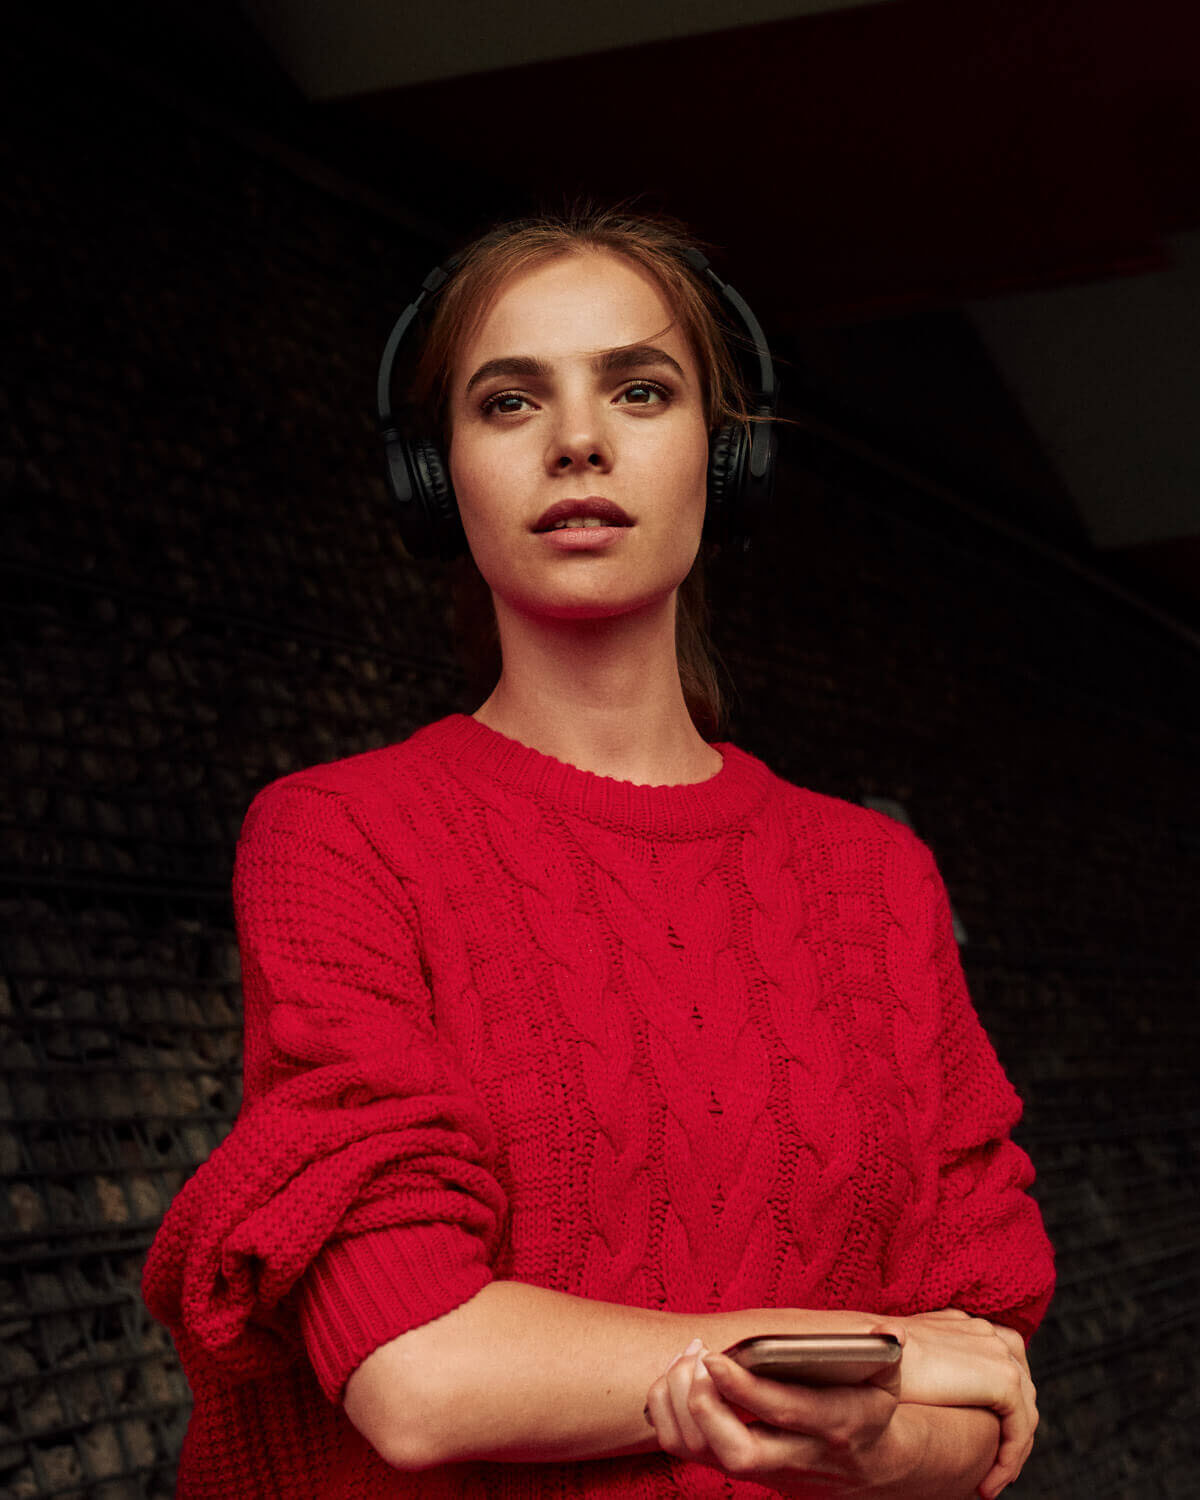 Girl, jumper, with headphones, portrait photographer Tim Cole